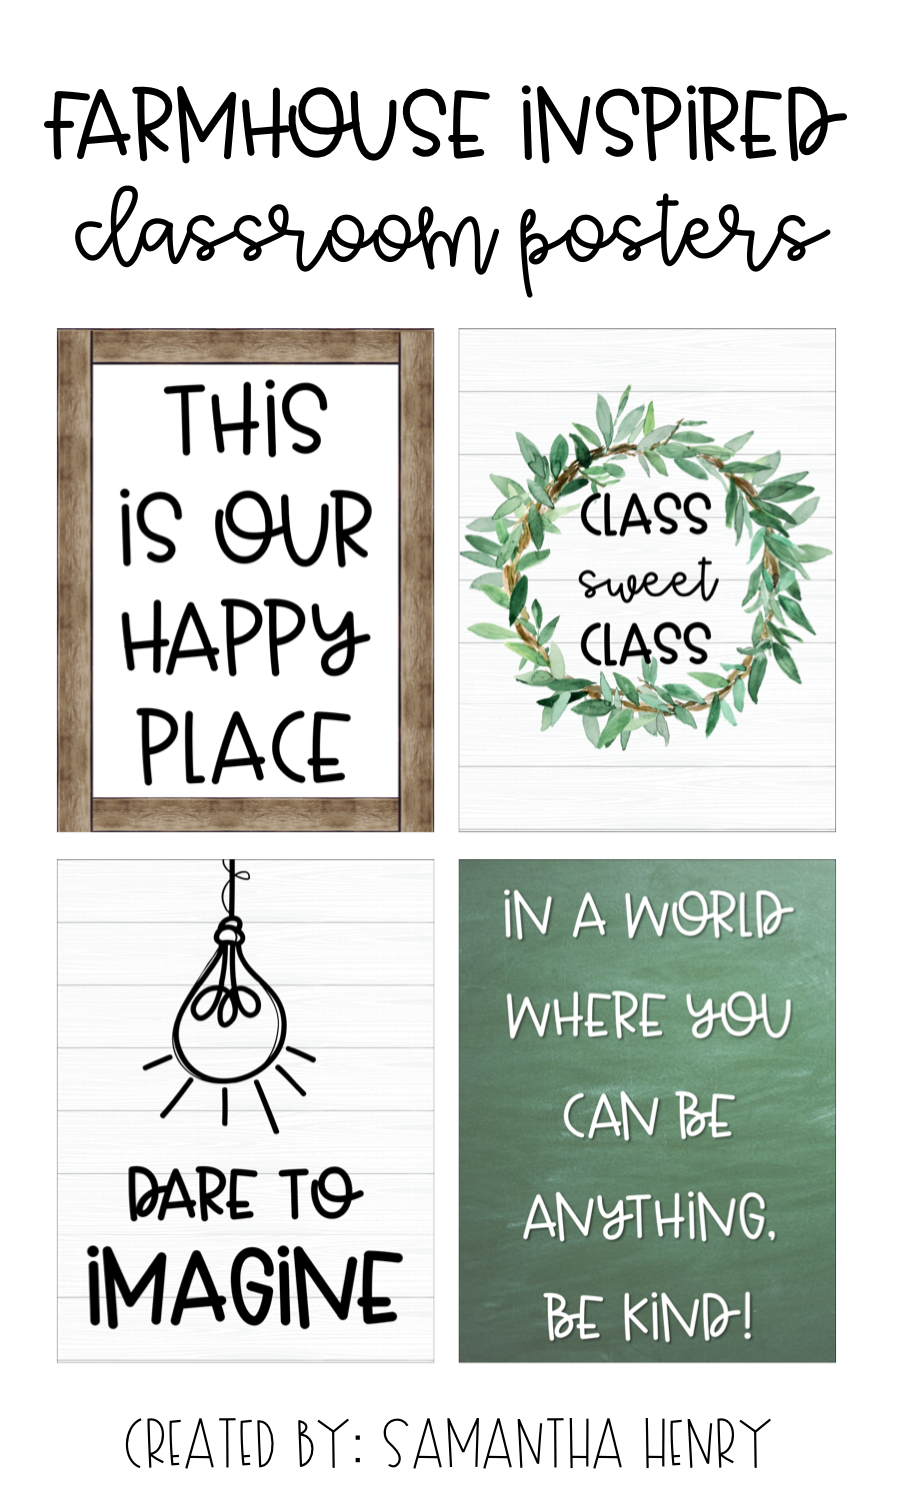 Farmhouse Classroom Posters Classroom Posters Classroom Pictures Classroom